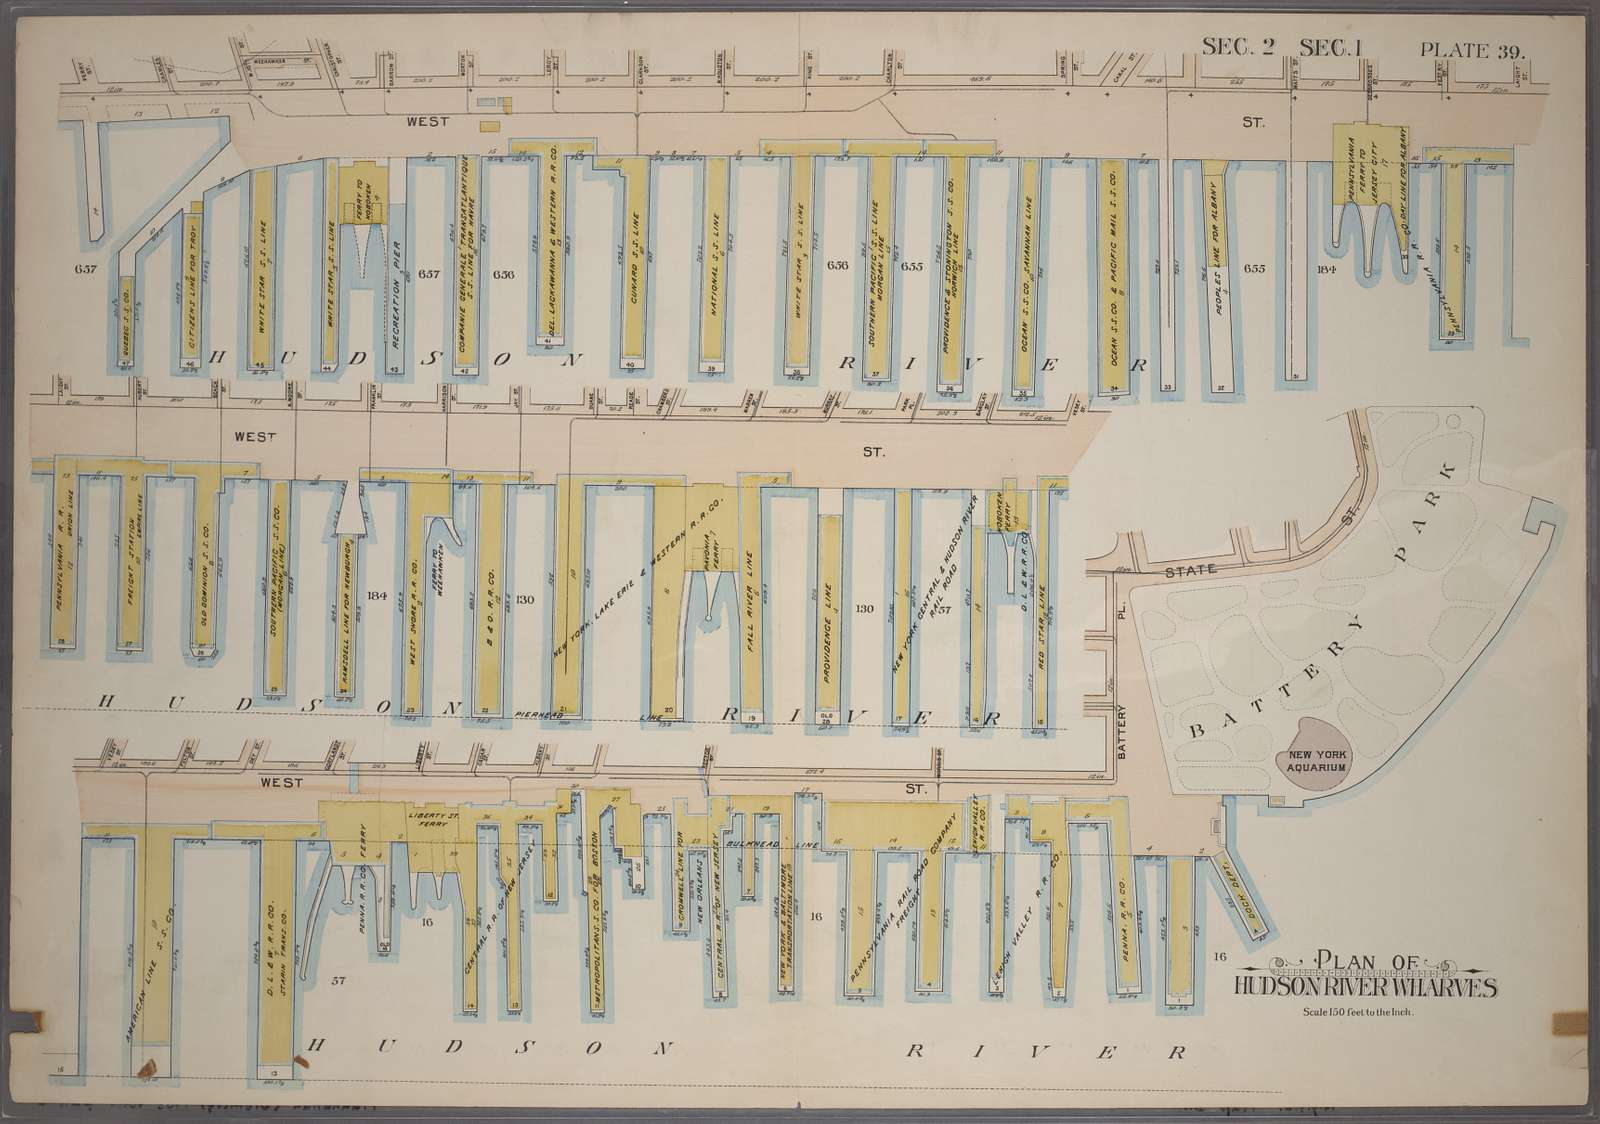 Plate 39, Sec. 2 & Sec. 1: Plan of Hudson River Wharves [Covers the Wharves between Perry Street - Battery Park on West Street]